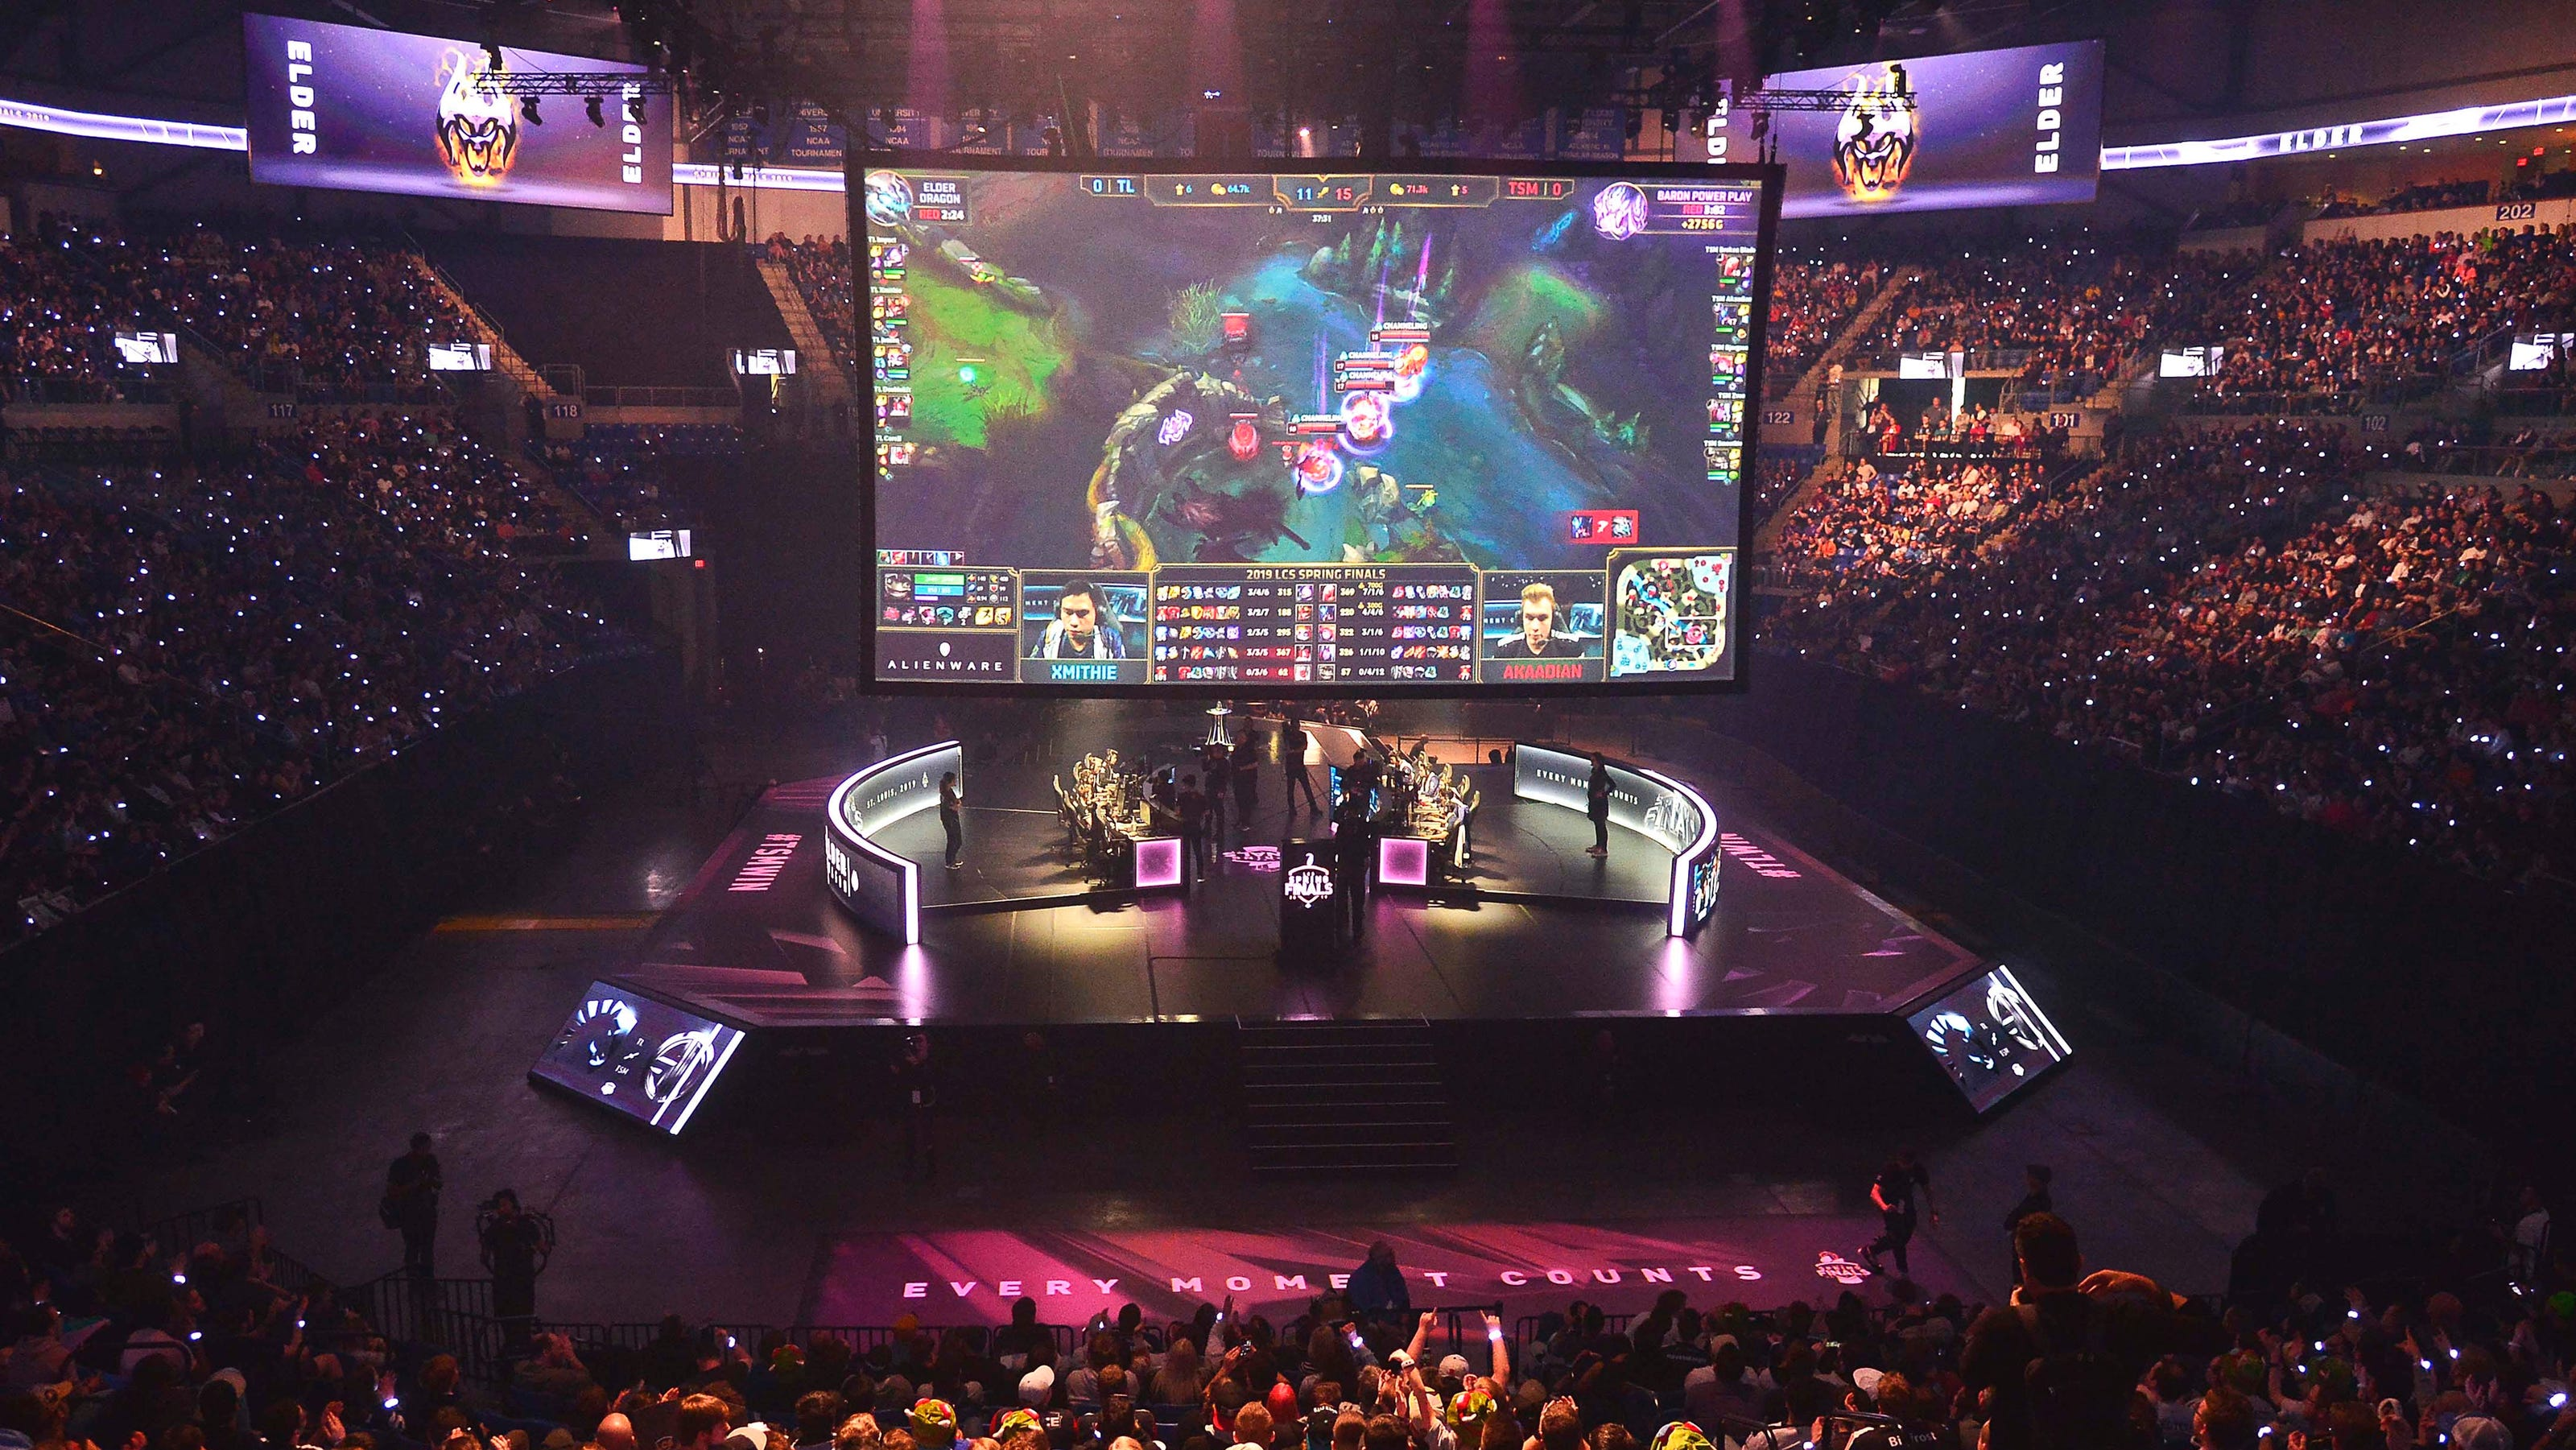 Online Video Game League Of Legends Turns 10 Looks To The